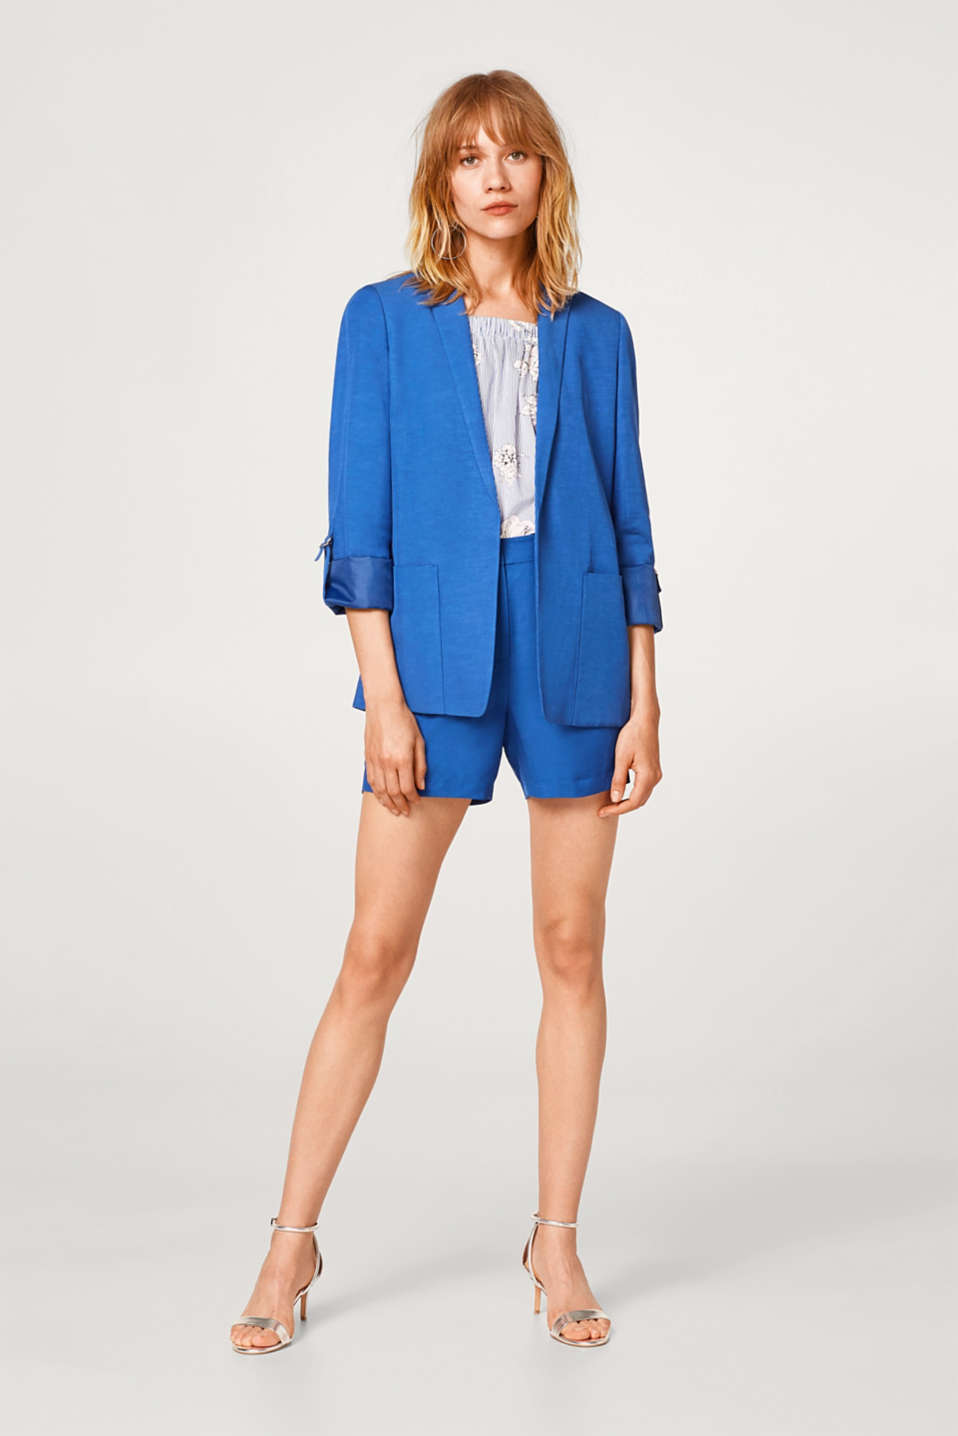 SUMMER SUIT mix + match casual turn-up blazer